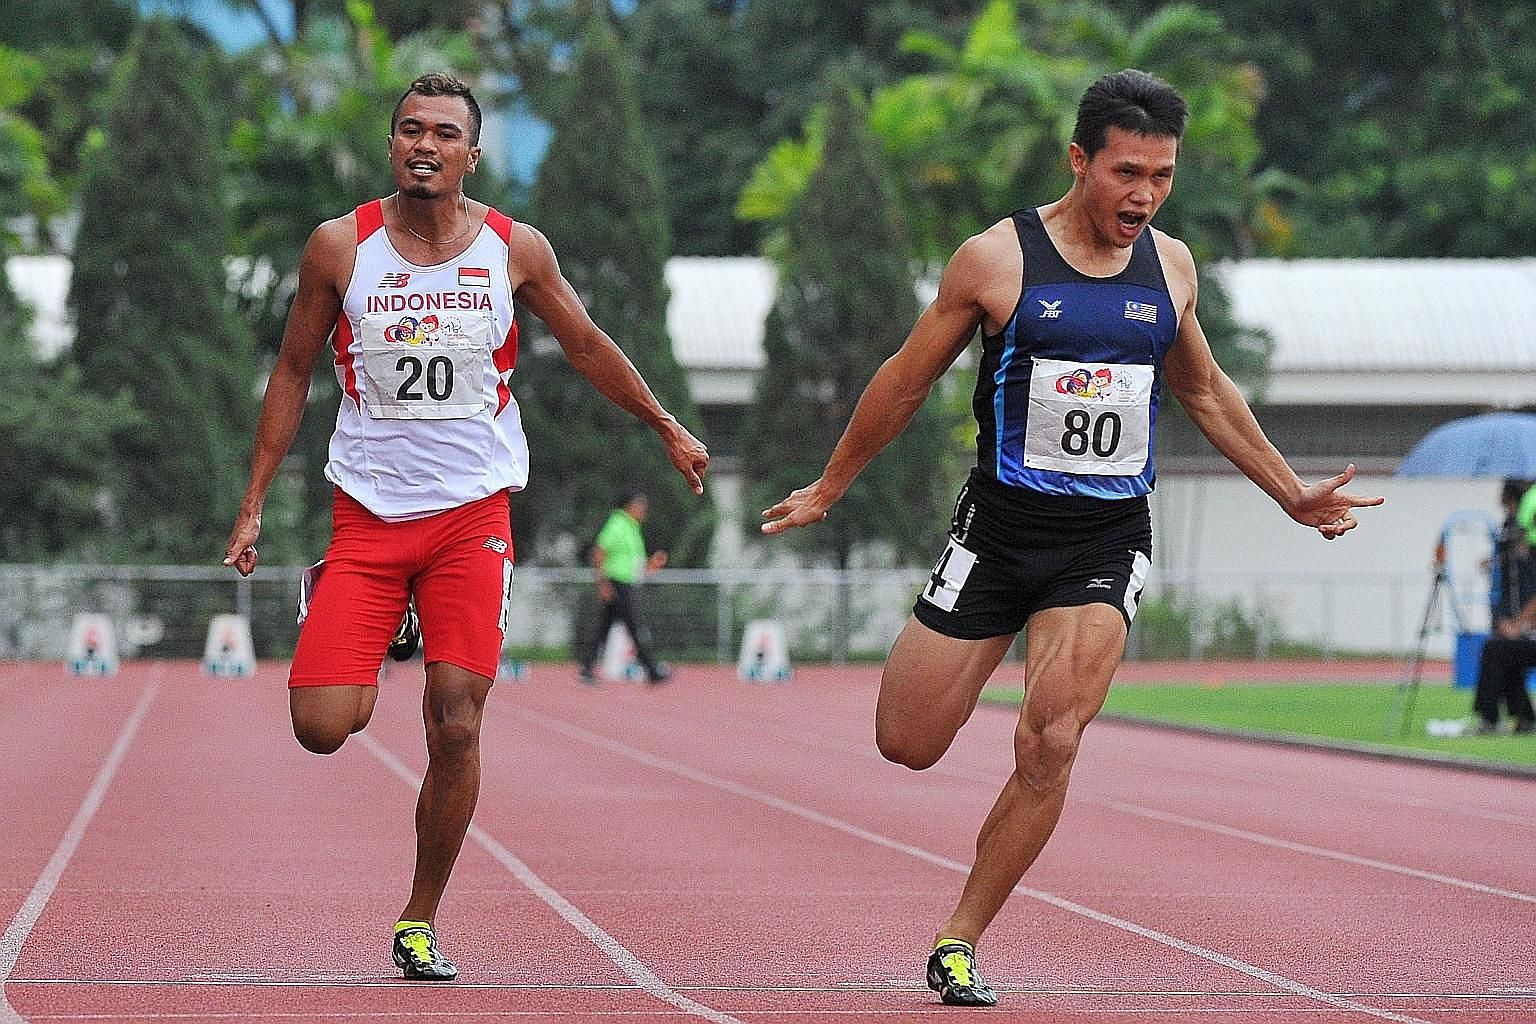 Jonathan Nyepa (right) of Malaysia winning gold in the Asean University Games 100m in 10.62sec at Choa Chu Kang Stadium yesterday. Indonesia's Iswandi Iswandi (No. 20) won the bronze behind Vietnam's Le Trong Hinh.